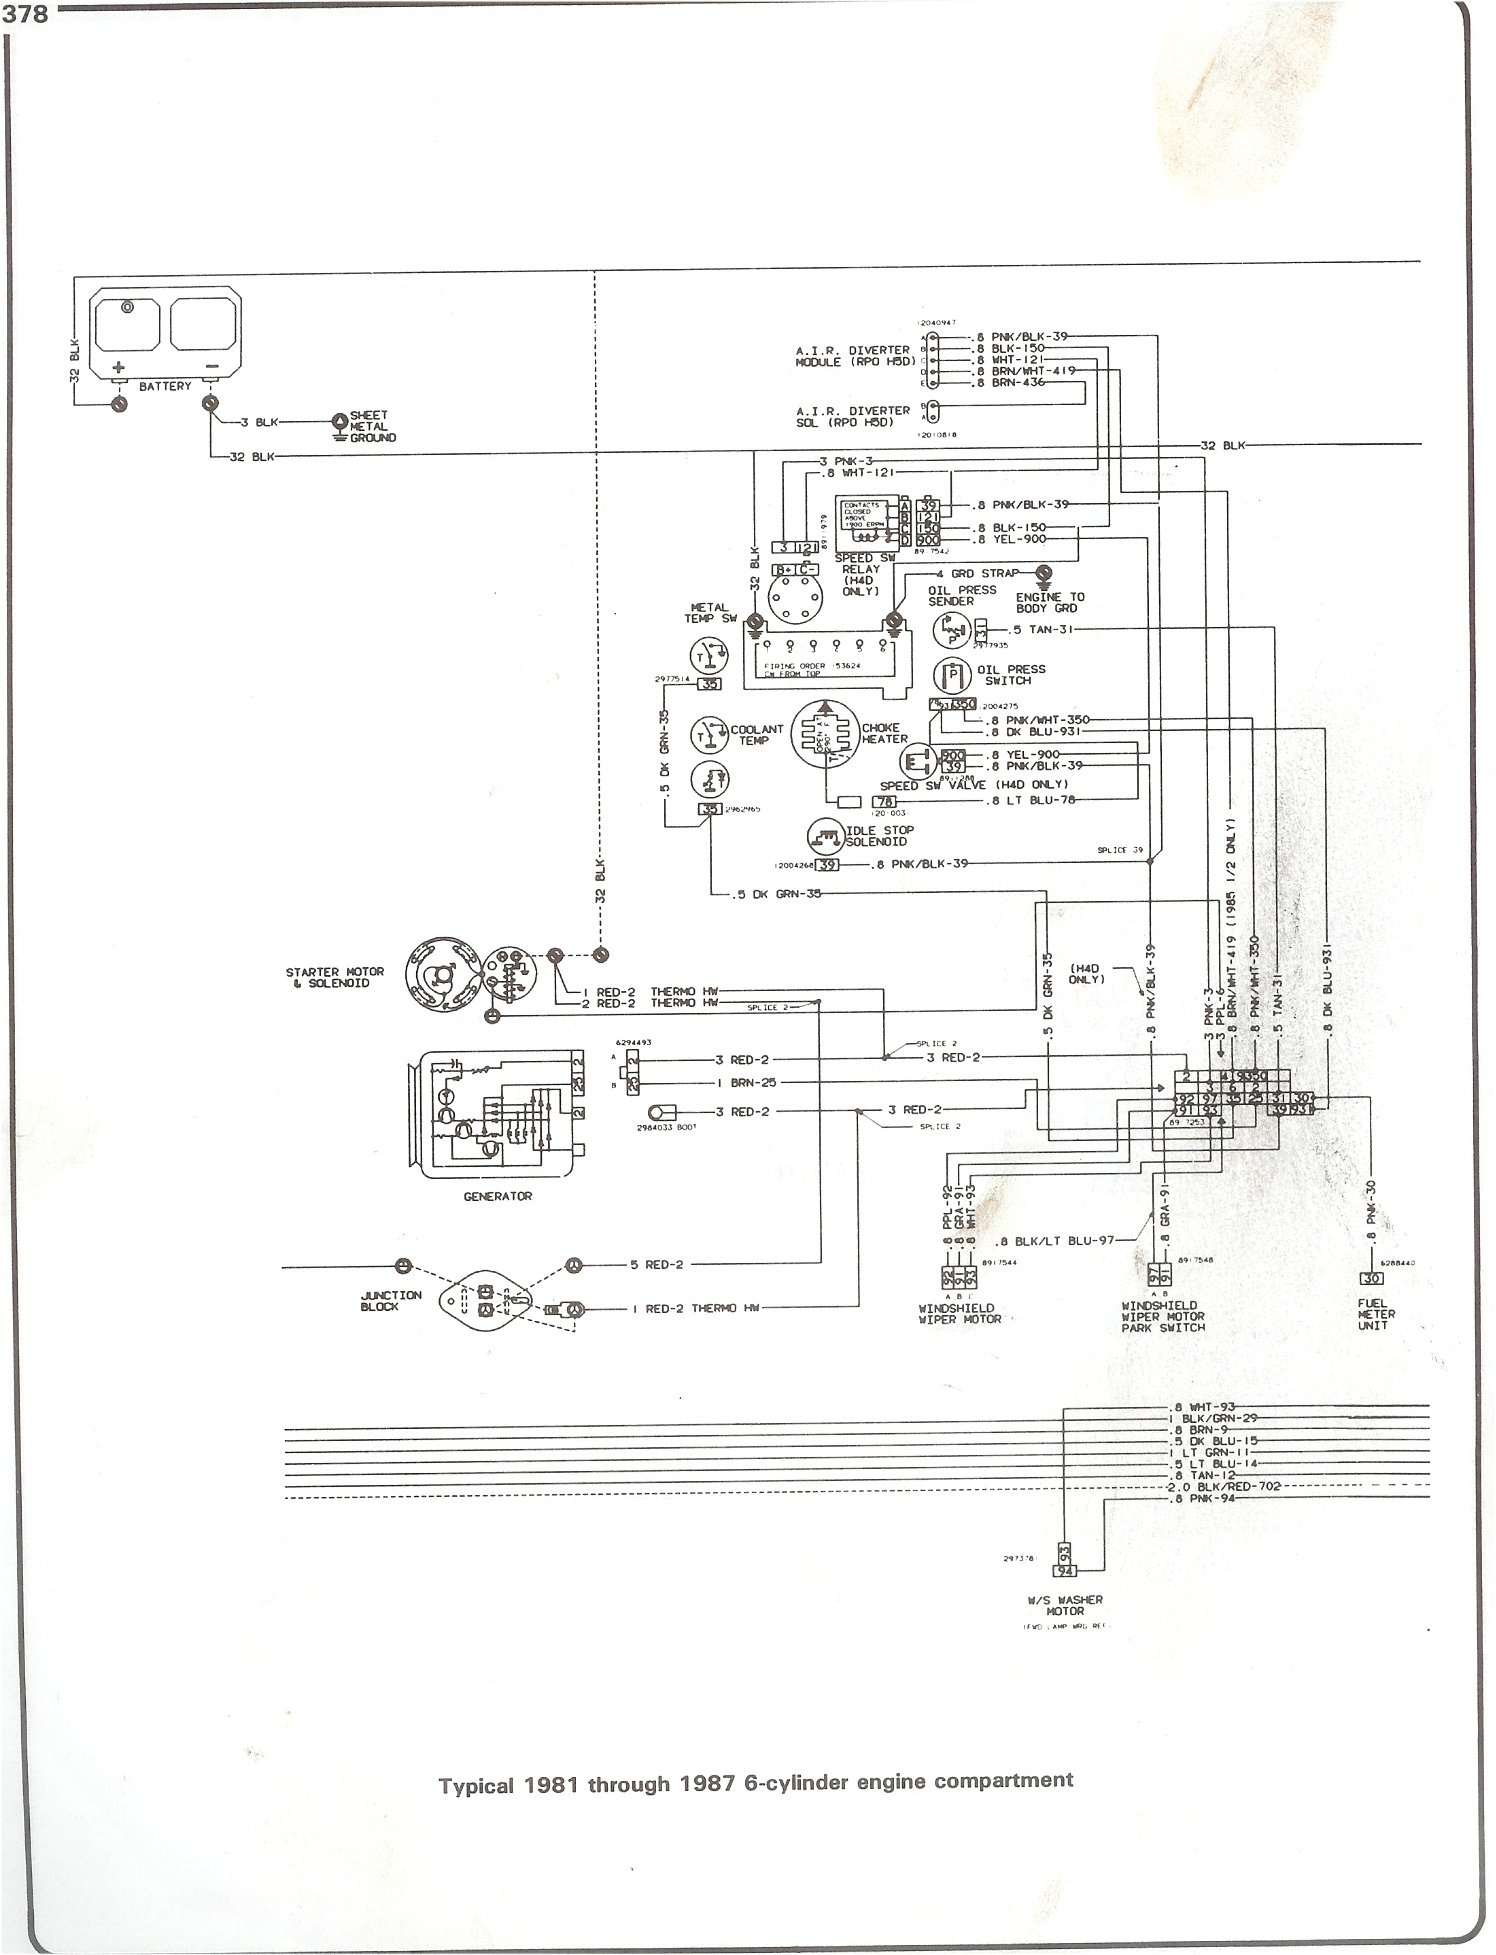 1969 Chevy Truck Engine Wiring Diagrams Schema Impala Diagram Schematic Complete 73 87 Original